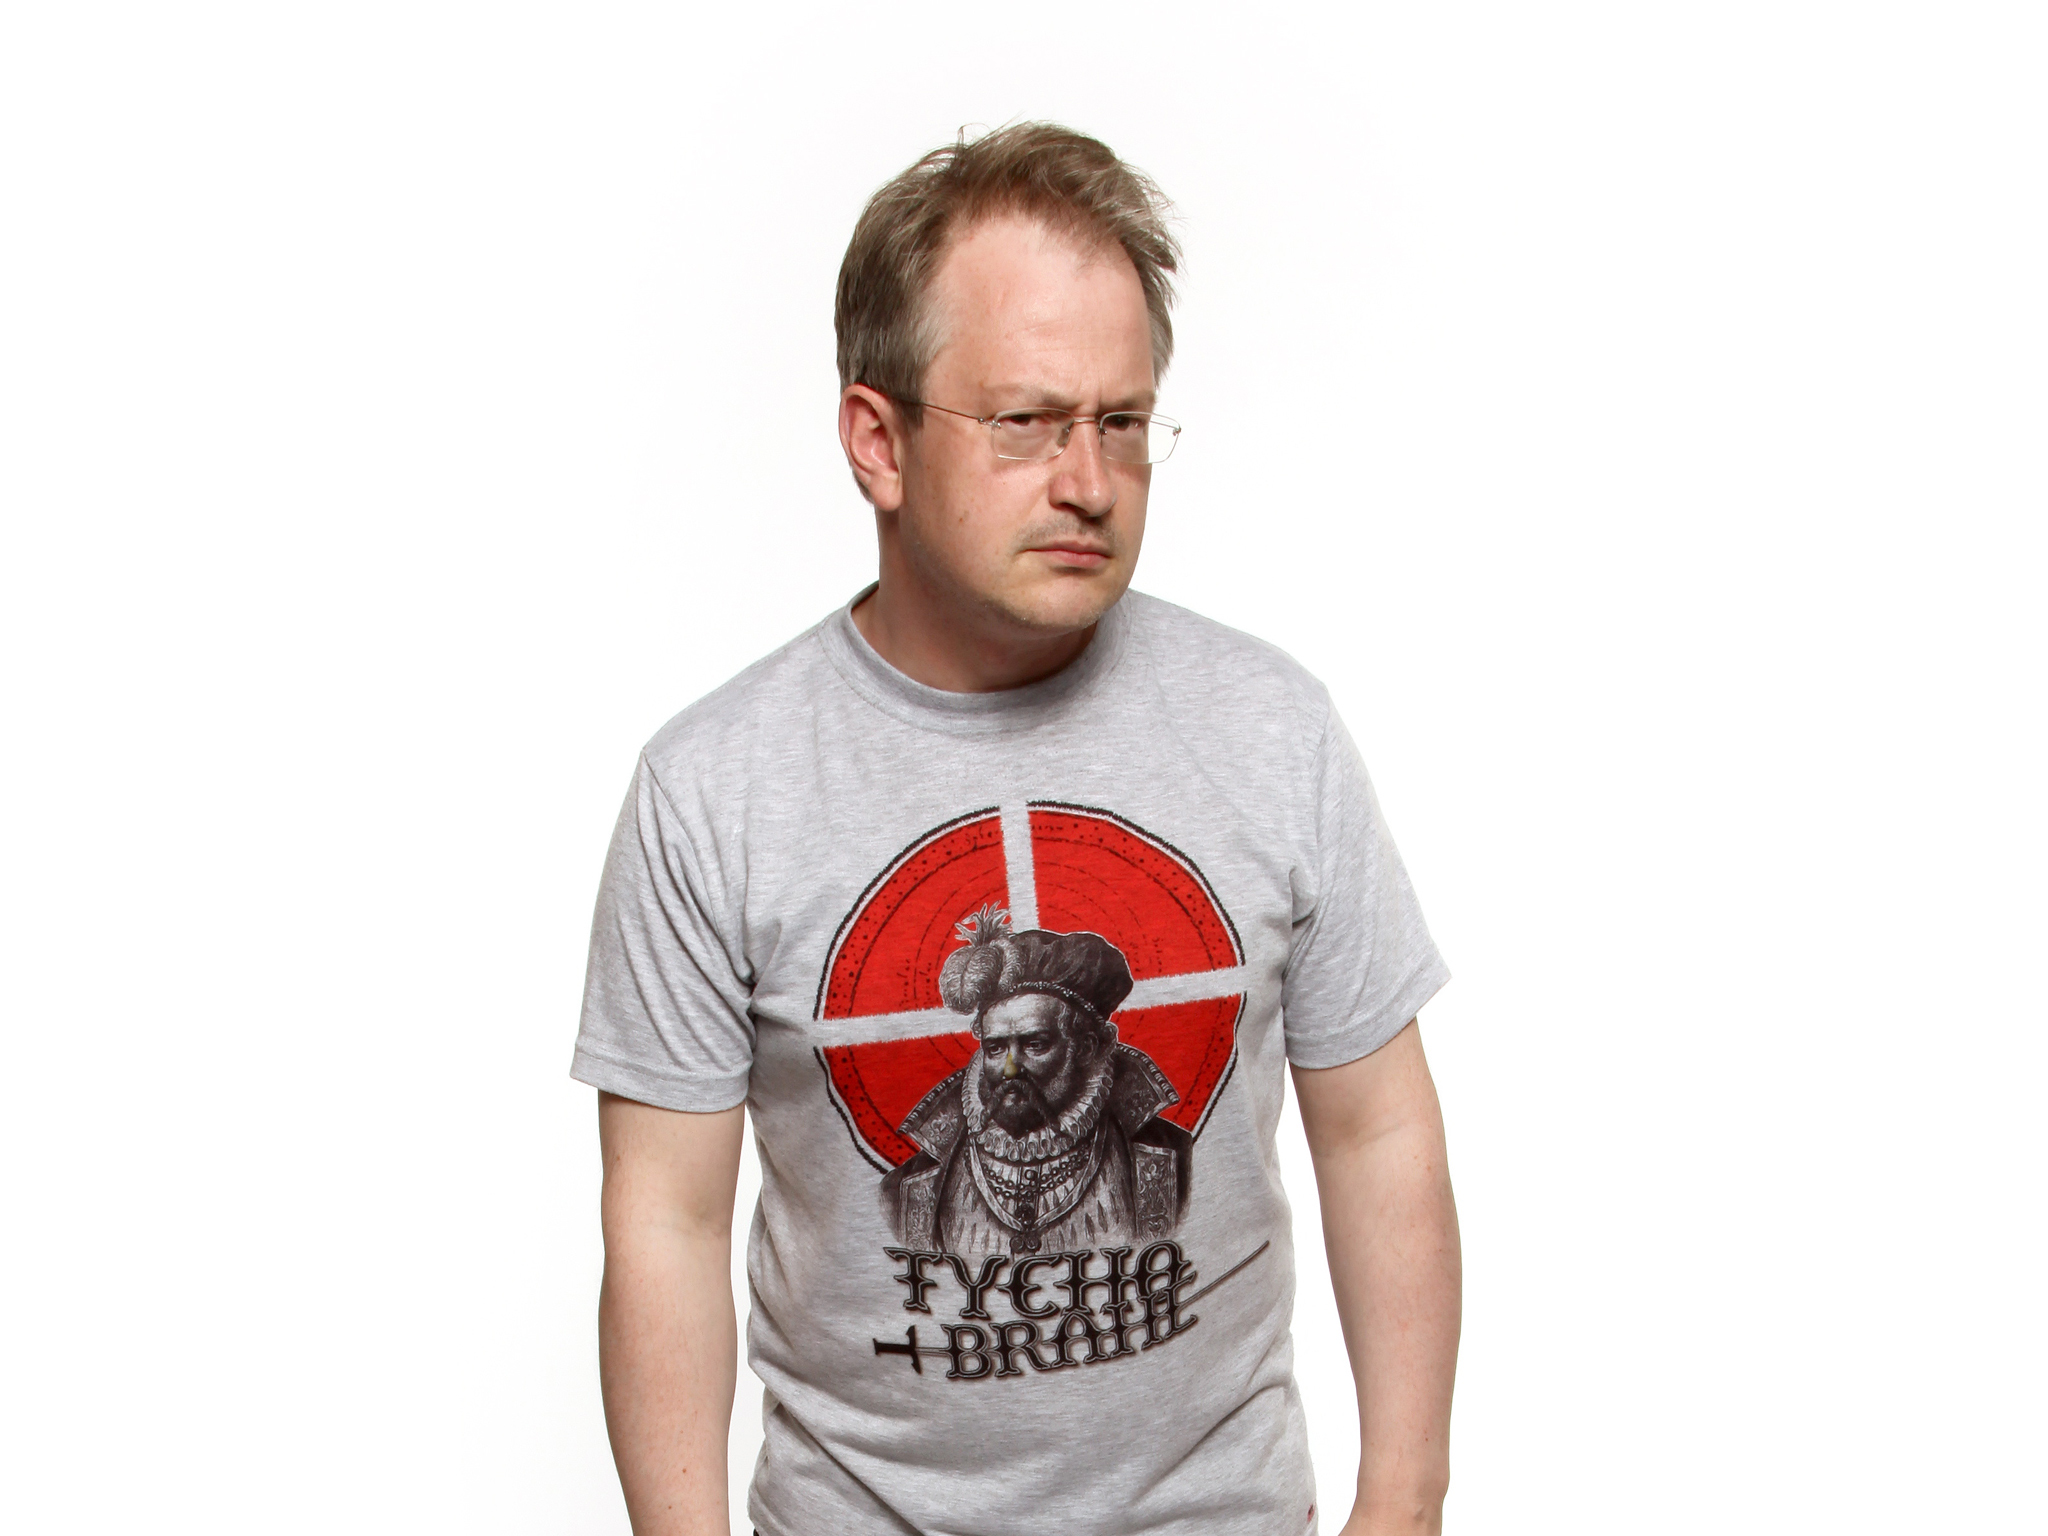 Say farewell to Robin Ince